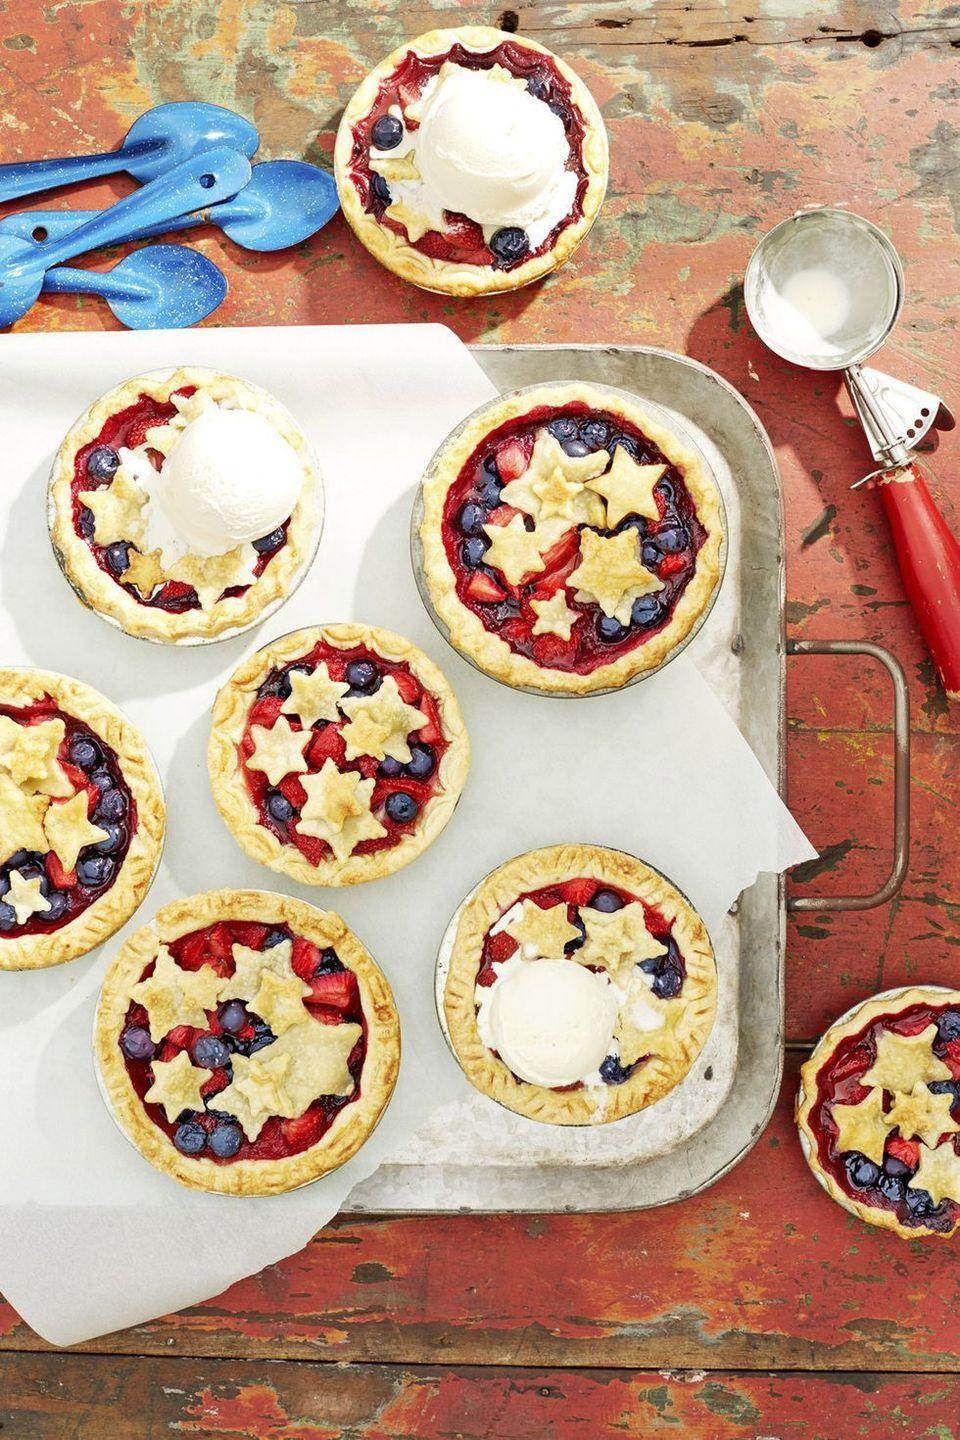 "<p>There's no better picnic dessert than a miniature pie, which requires no messy cutting or serving in order to feed your guests. Just don't forget the <a href=""https://www.countryliving.com/food-drinks/recipes/a3404/vanilla-ice-cream-recipe-clv0610/"" rel=""nofollow noopener"" target=""_blank"" data-ylk=""slk:vanilla ice cream"" class=""link rapid-noclick-resp"">vanilla ice cream</a>.</p><p><strong><a href=""https://www.countryliving.com/food-drinks/a21348015/mini-stars-berry-pies-recipe/"" rel=""nofollow noopener"" target=""_blank"" data-ylk=""slk:Get the recipe"" class=""link rapid-noclick-resp"">Get the recipe</a>.</strong></p><p><a class=""link rapid-noclick-resp"" href=""https://www.amazon.com/Circulon-Nonstick-Bakeware-2-Piece-Gray/dp/B0093JW3E0?tag=syn-yahoo-20&ascsubtag=%5Bartid%7C10050.g.3663%5Bsrc%7Cyahoo-us"" rel=""nofollow noopener"" target=""_blank"" data-ylk=""slk:SHOP BAKING SHEETS"">SHOP BAKING SHEETS</a></p>"